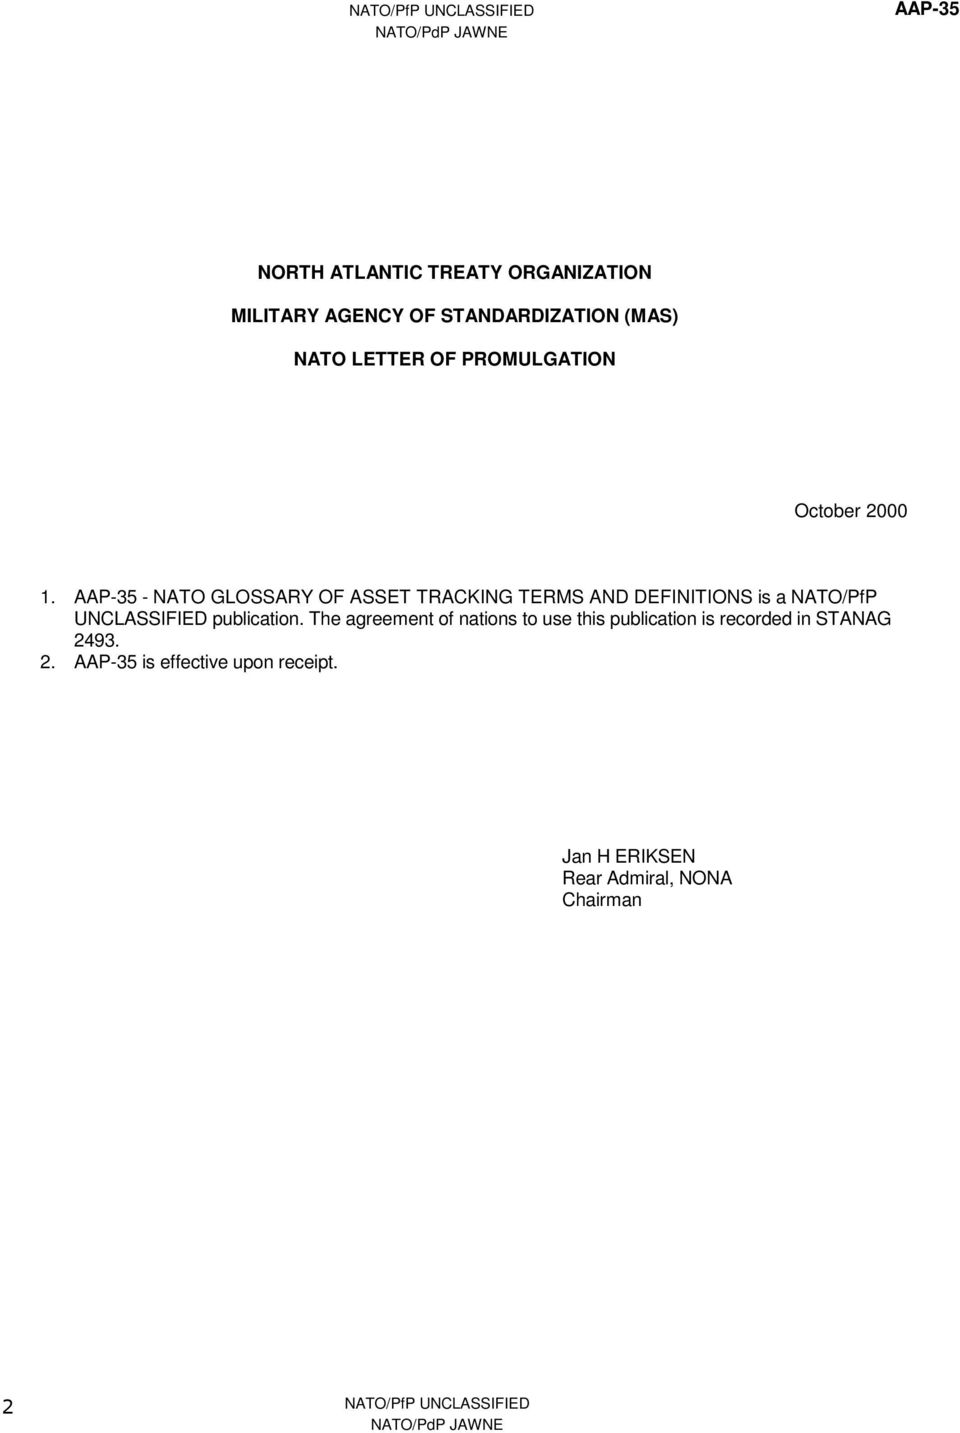 AAP-35 - NATO GLOSSARY OF ASSET TRACKING TERMS AND DEFINITIONS is a NATO/PfP UNCLASSIFIED